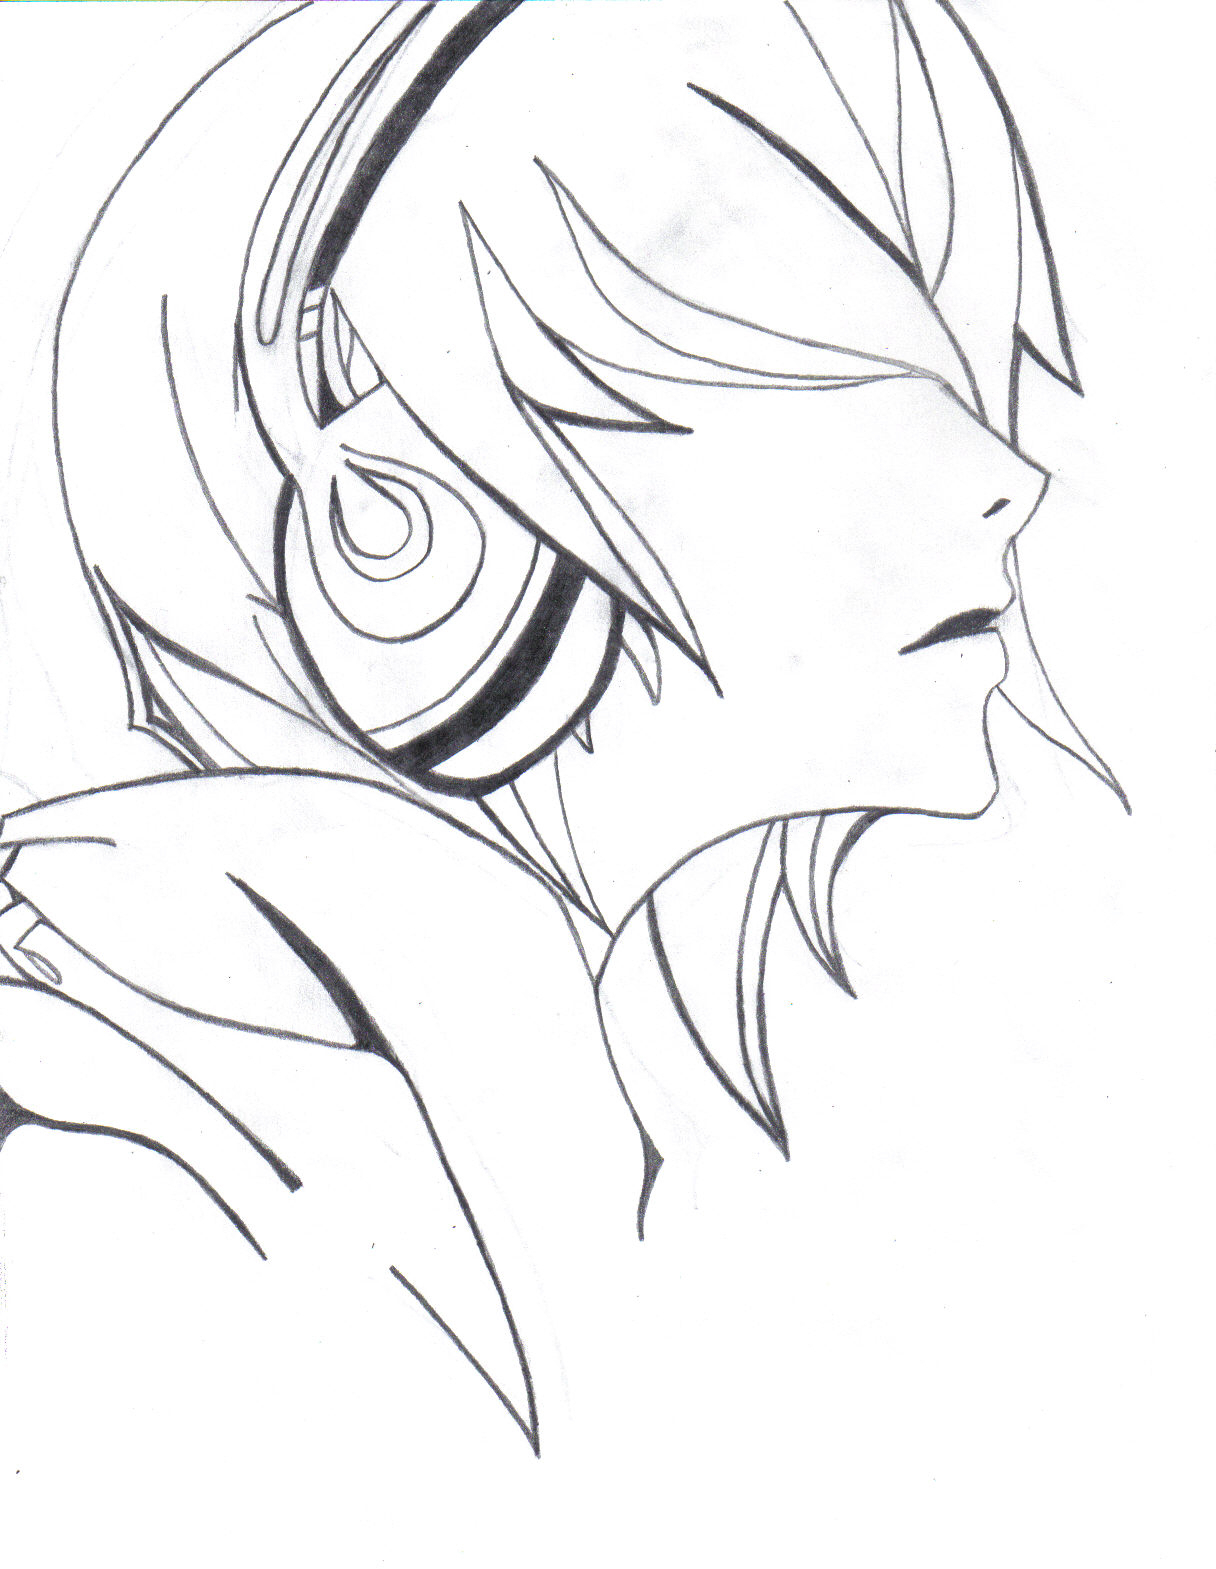 anime guy drawing at getdrawings com free for personal use anime